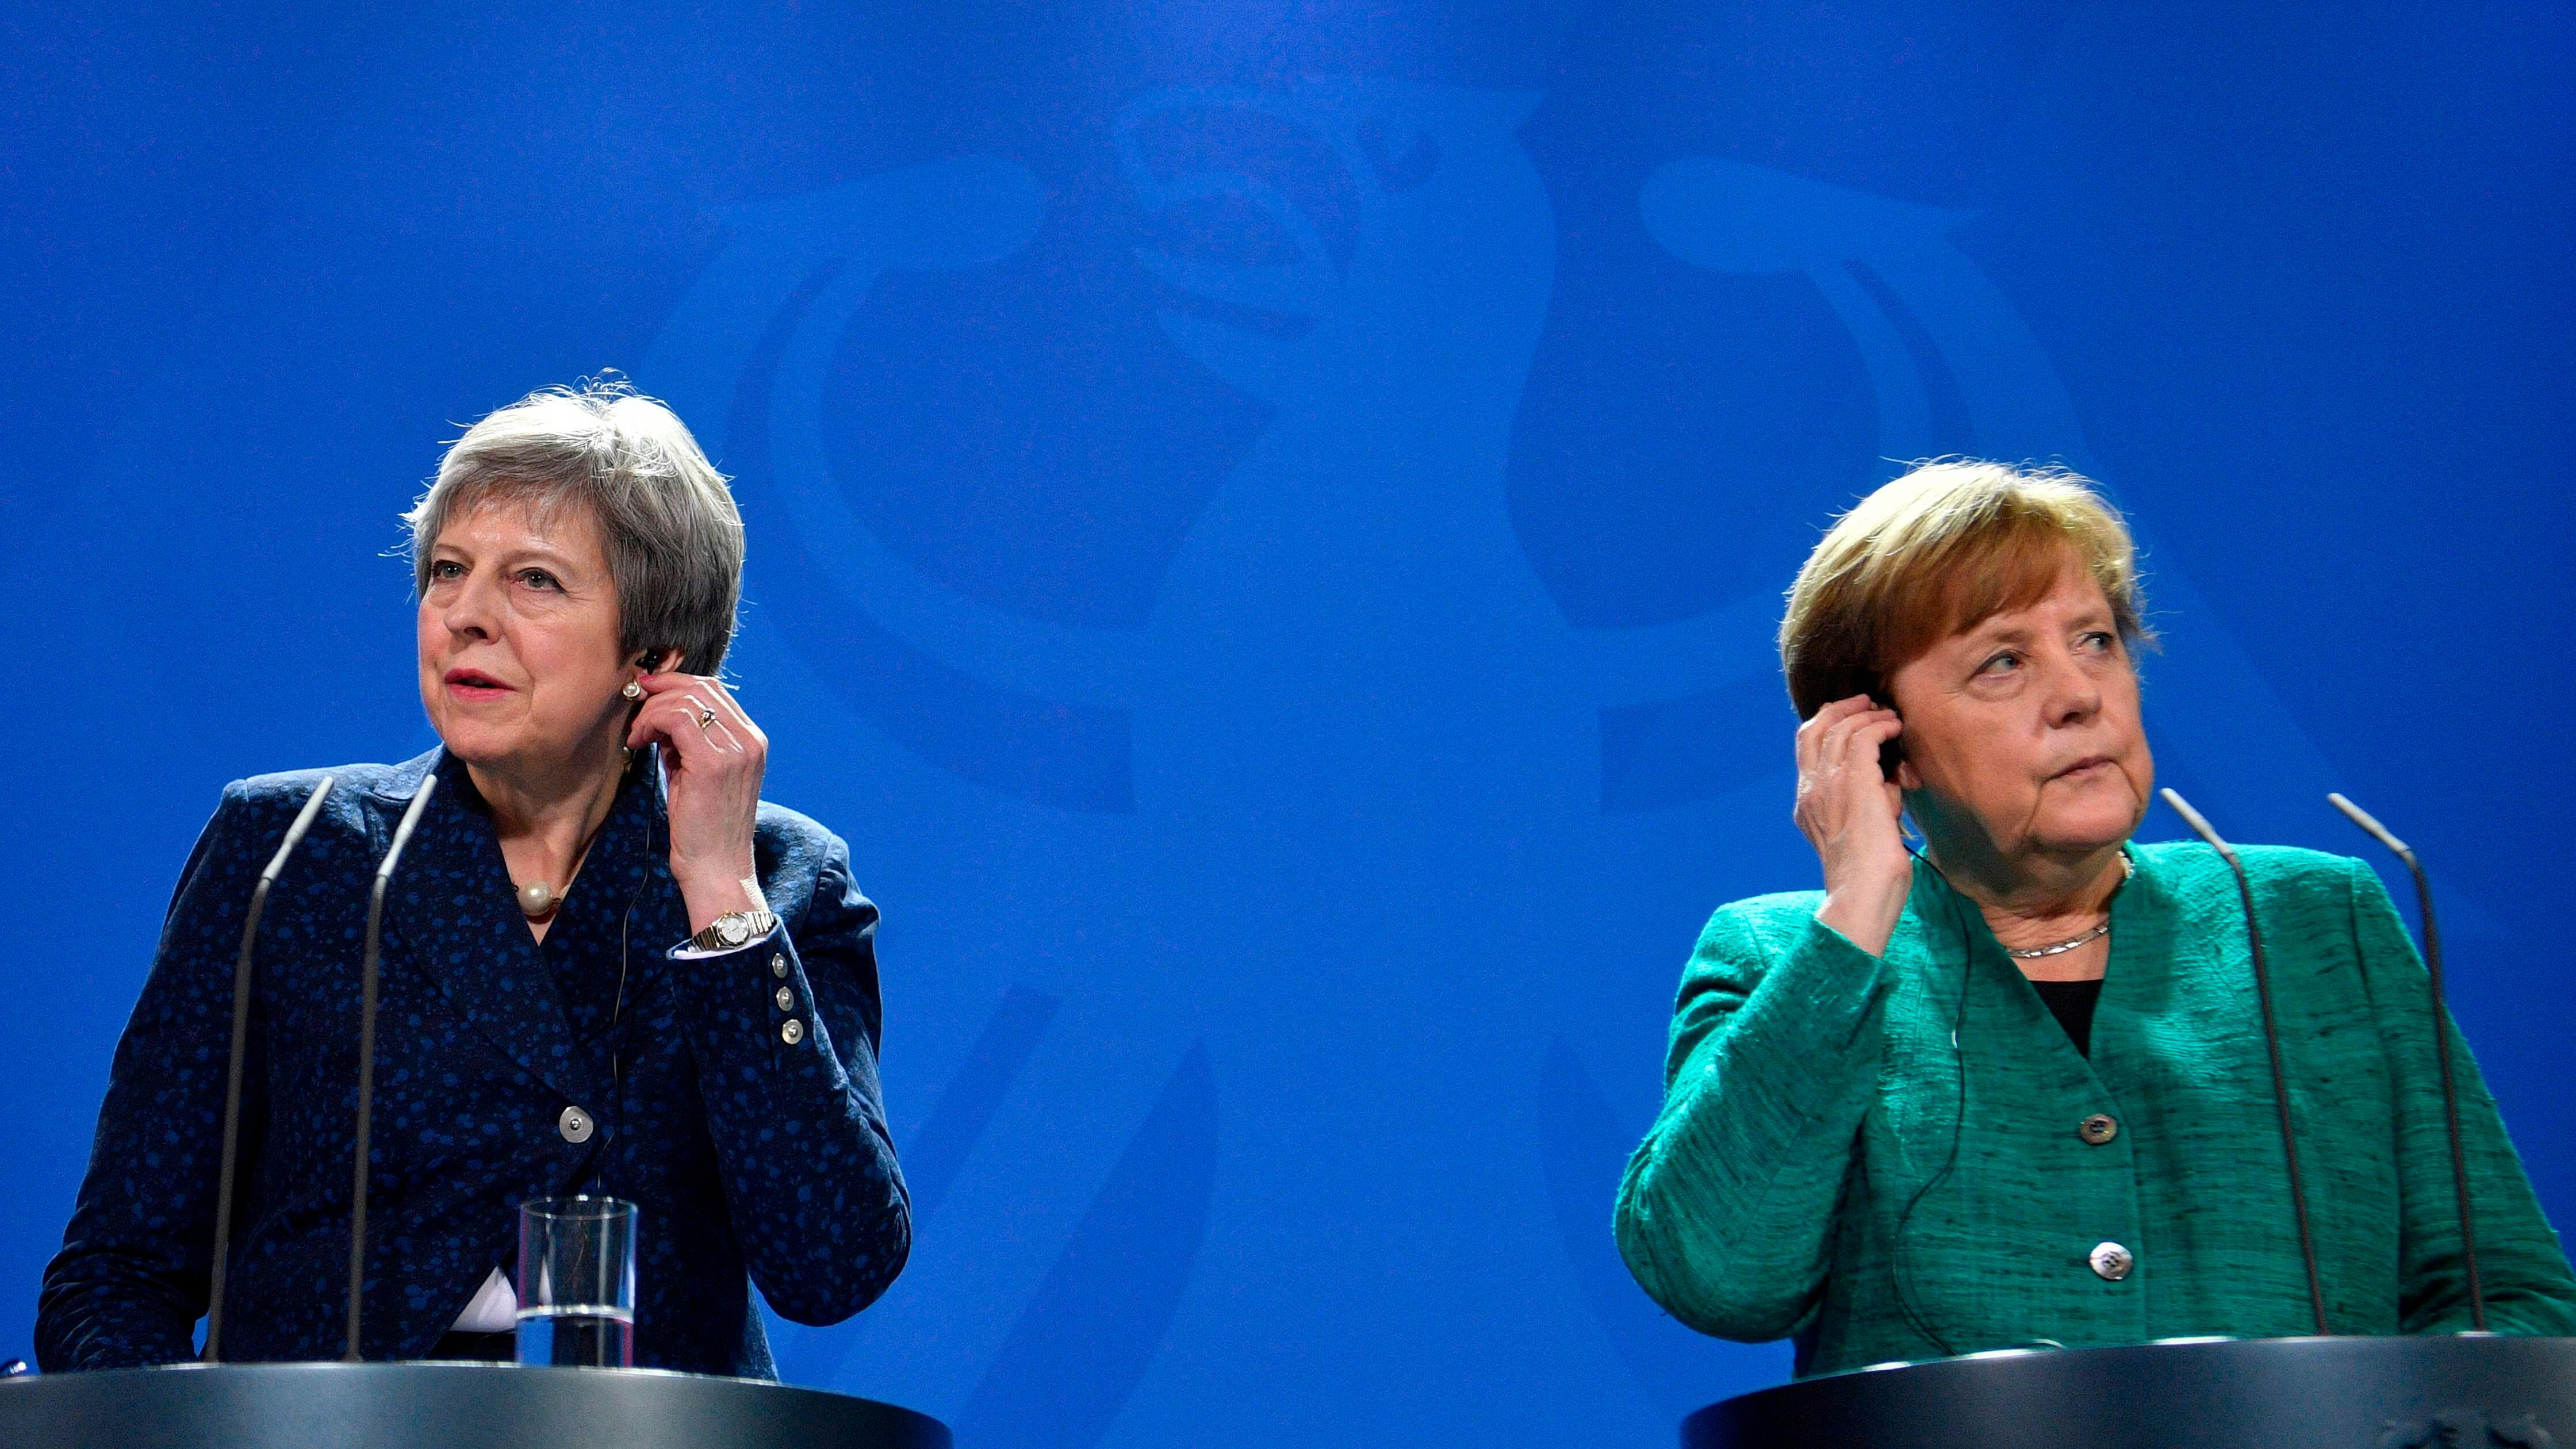 Angela Merkel insists she isn't 'frustrated' at Theresa May's lack of Brexit clarity